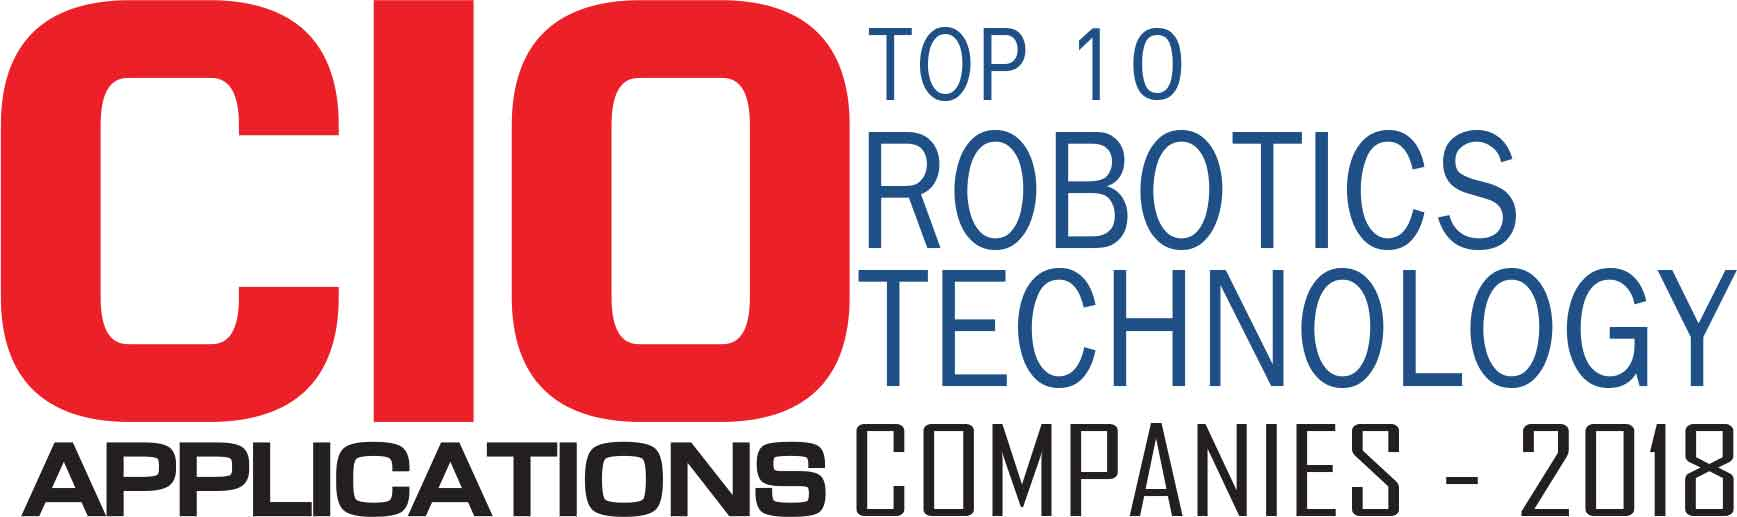 Top 10 Companies Providing Robotics Solution - 2018